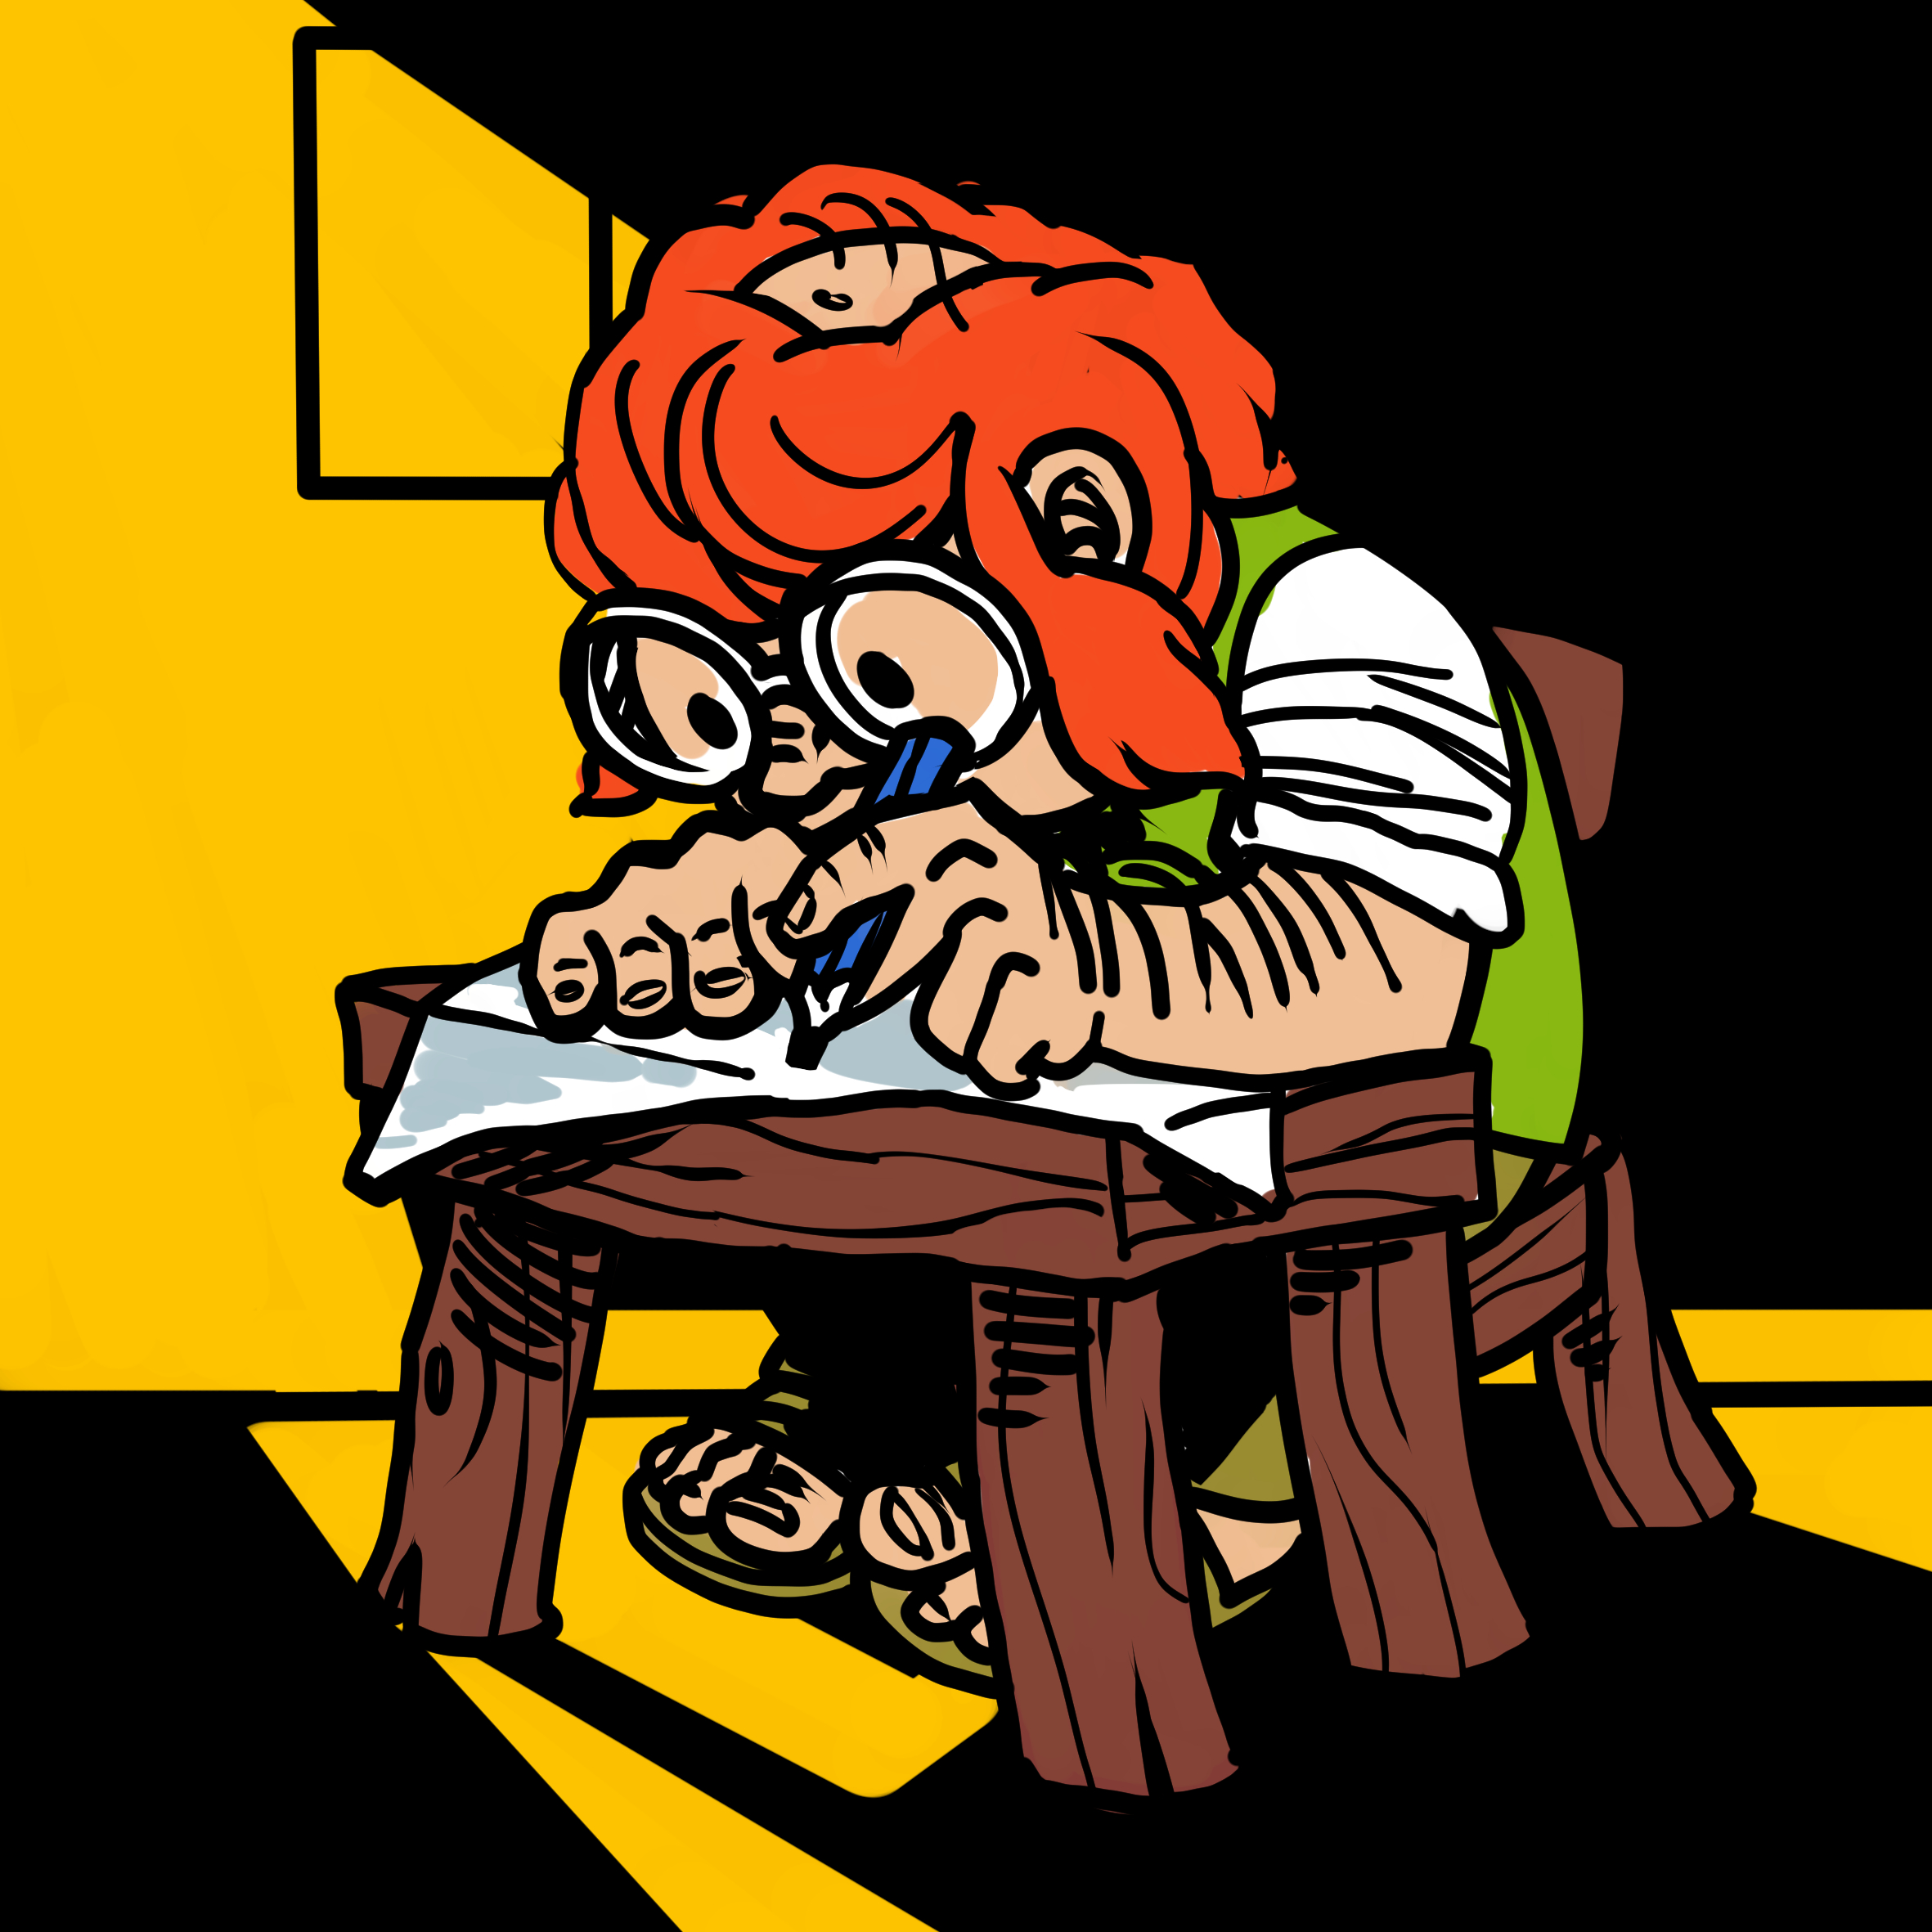 A gnome drawing at his desk